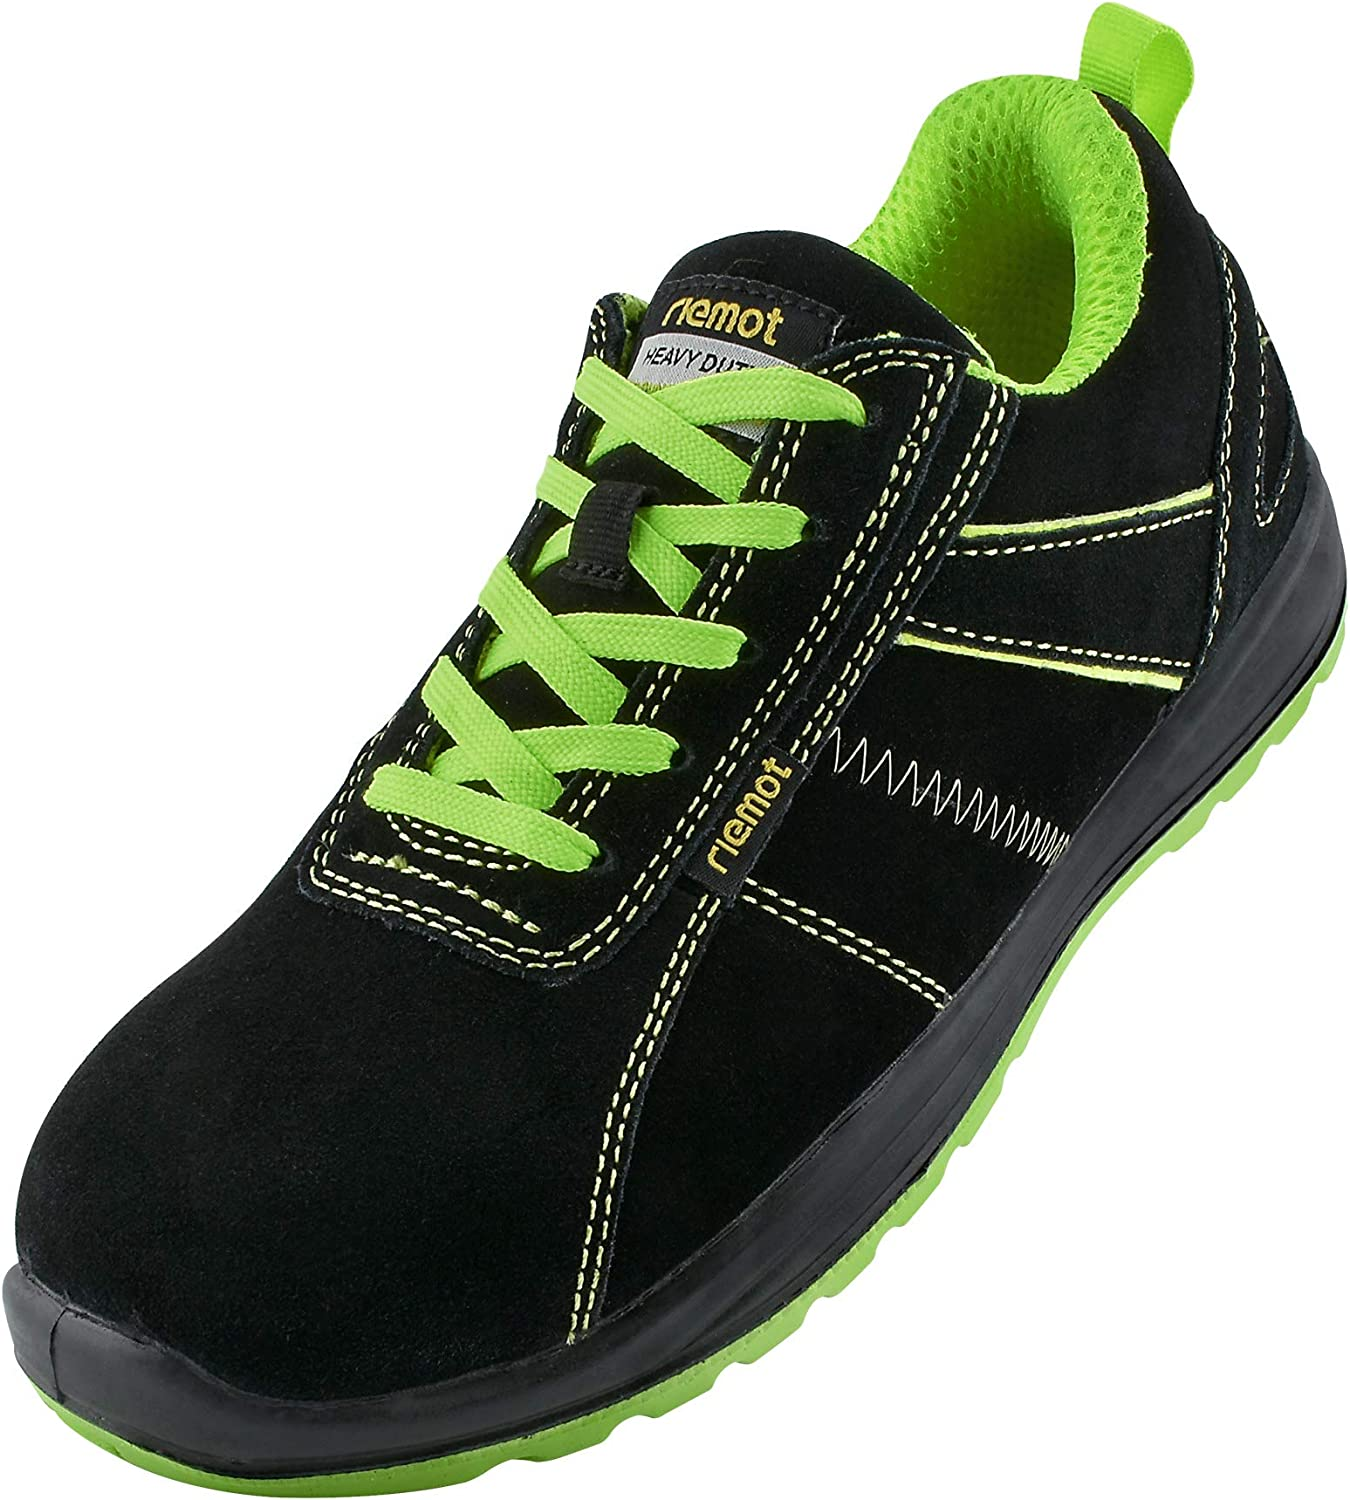 Mens Lightweight Non Metal Plastic Composite Toe Cap Safety Work Shoes Trainers